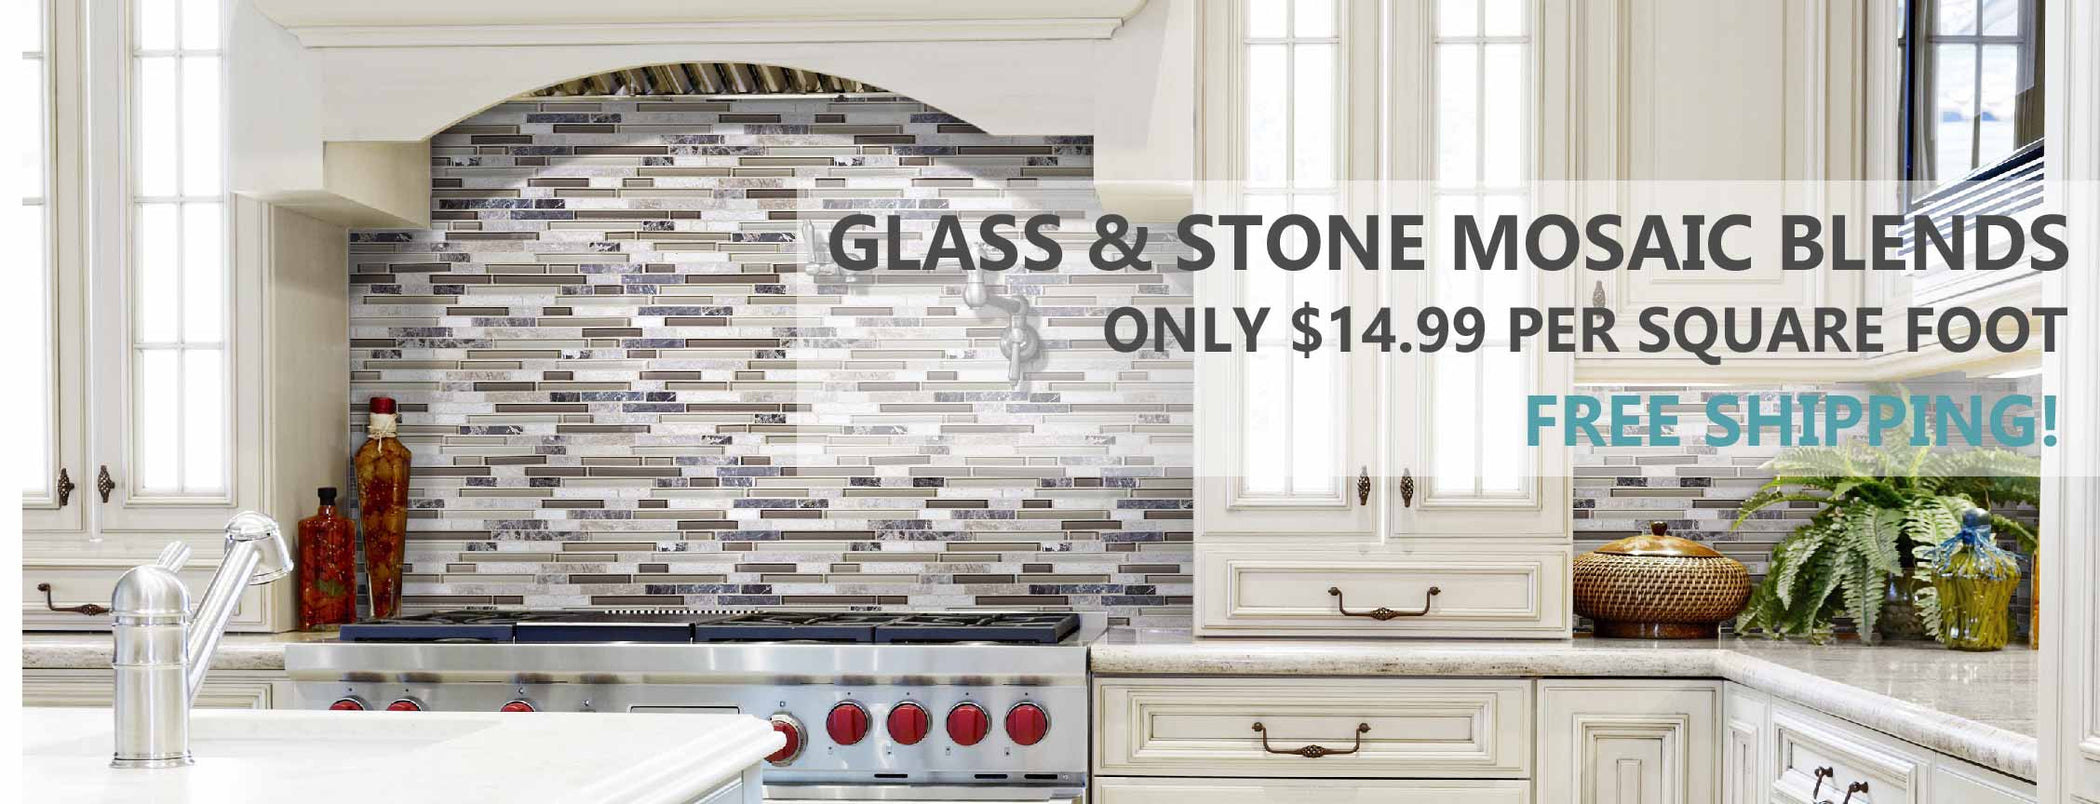 Rocky Point Tile - Online Tile Store - Glass Tiles and Mosaics ...